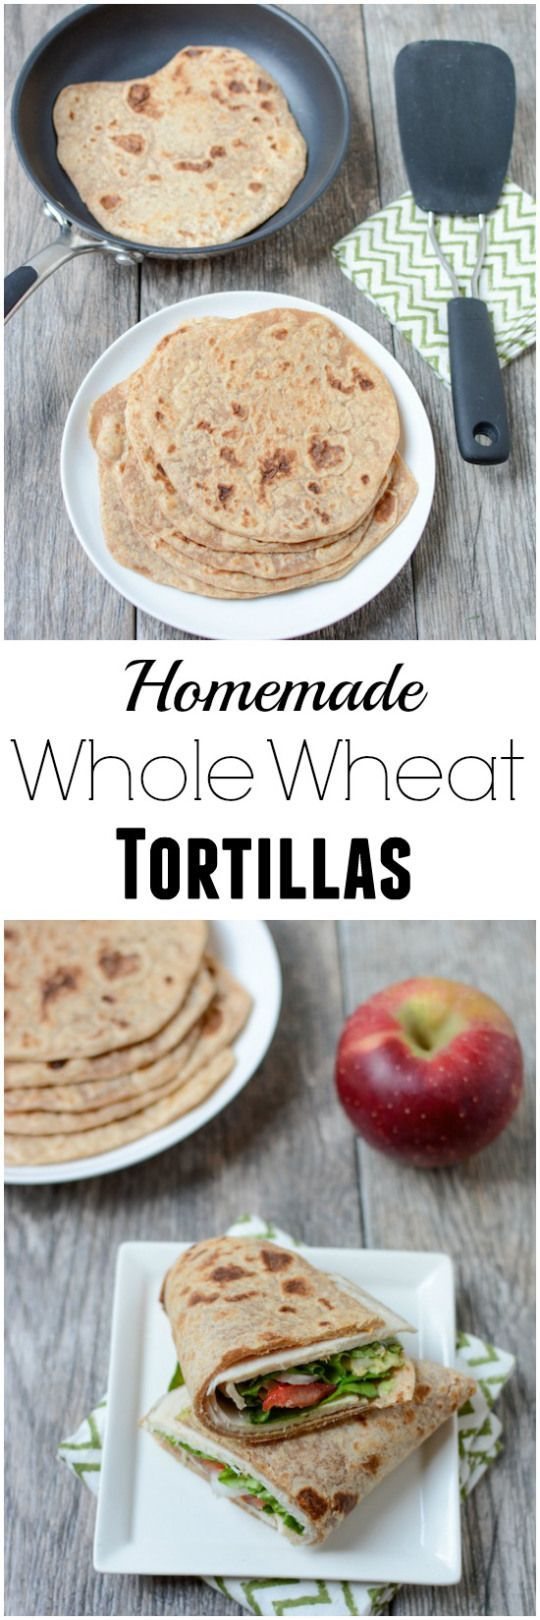 Made with just 4 ingredients, this recipe for Homemade Whole Wheat Tortillas is easy to make and tastes way better than store-bought!